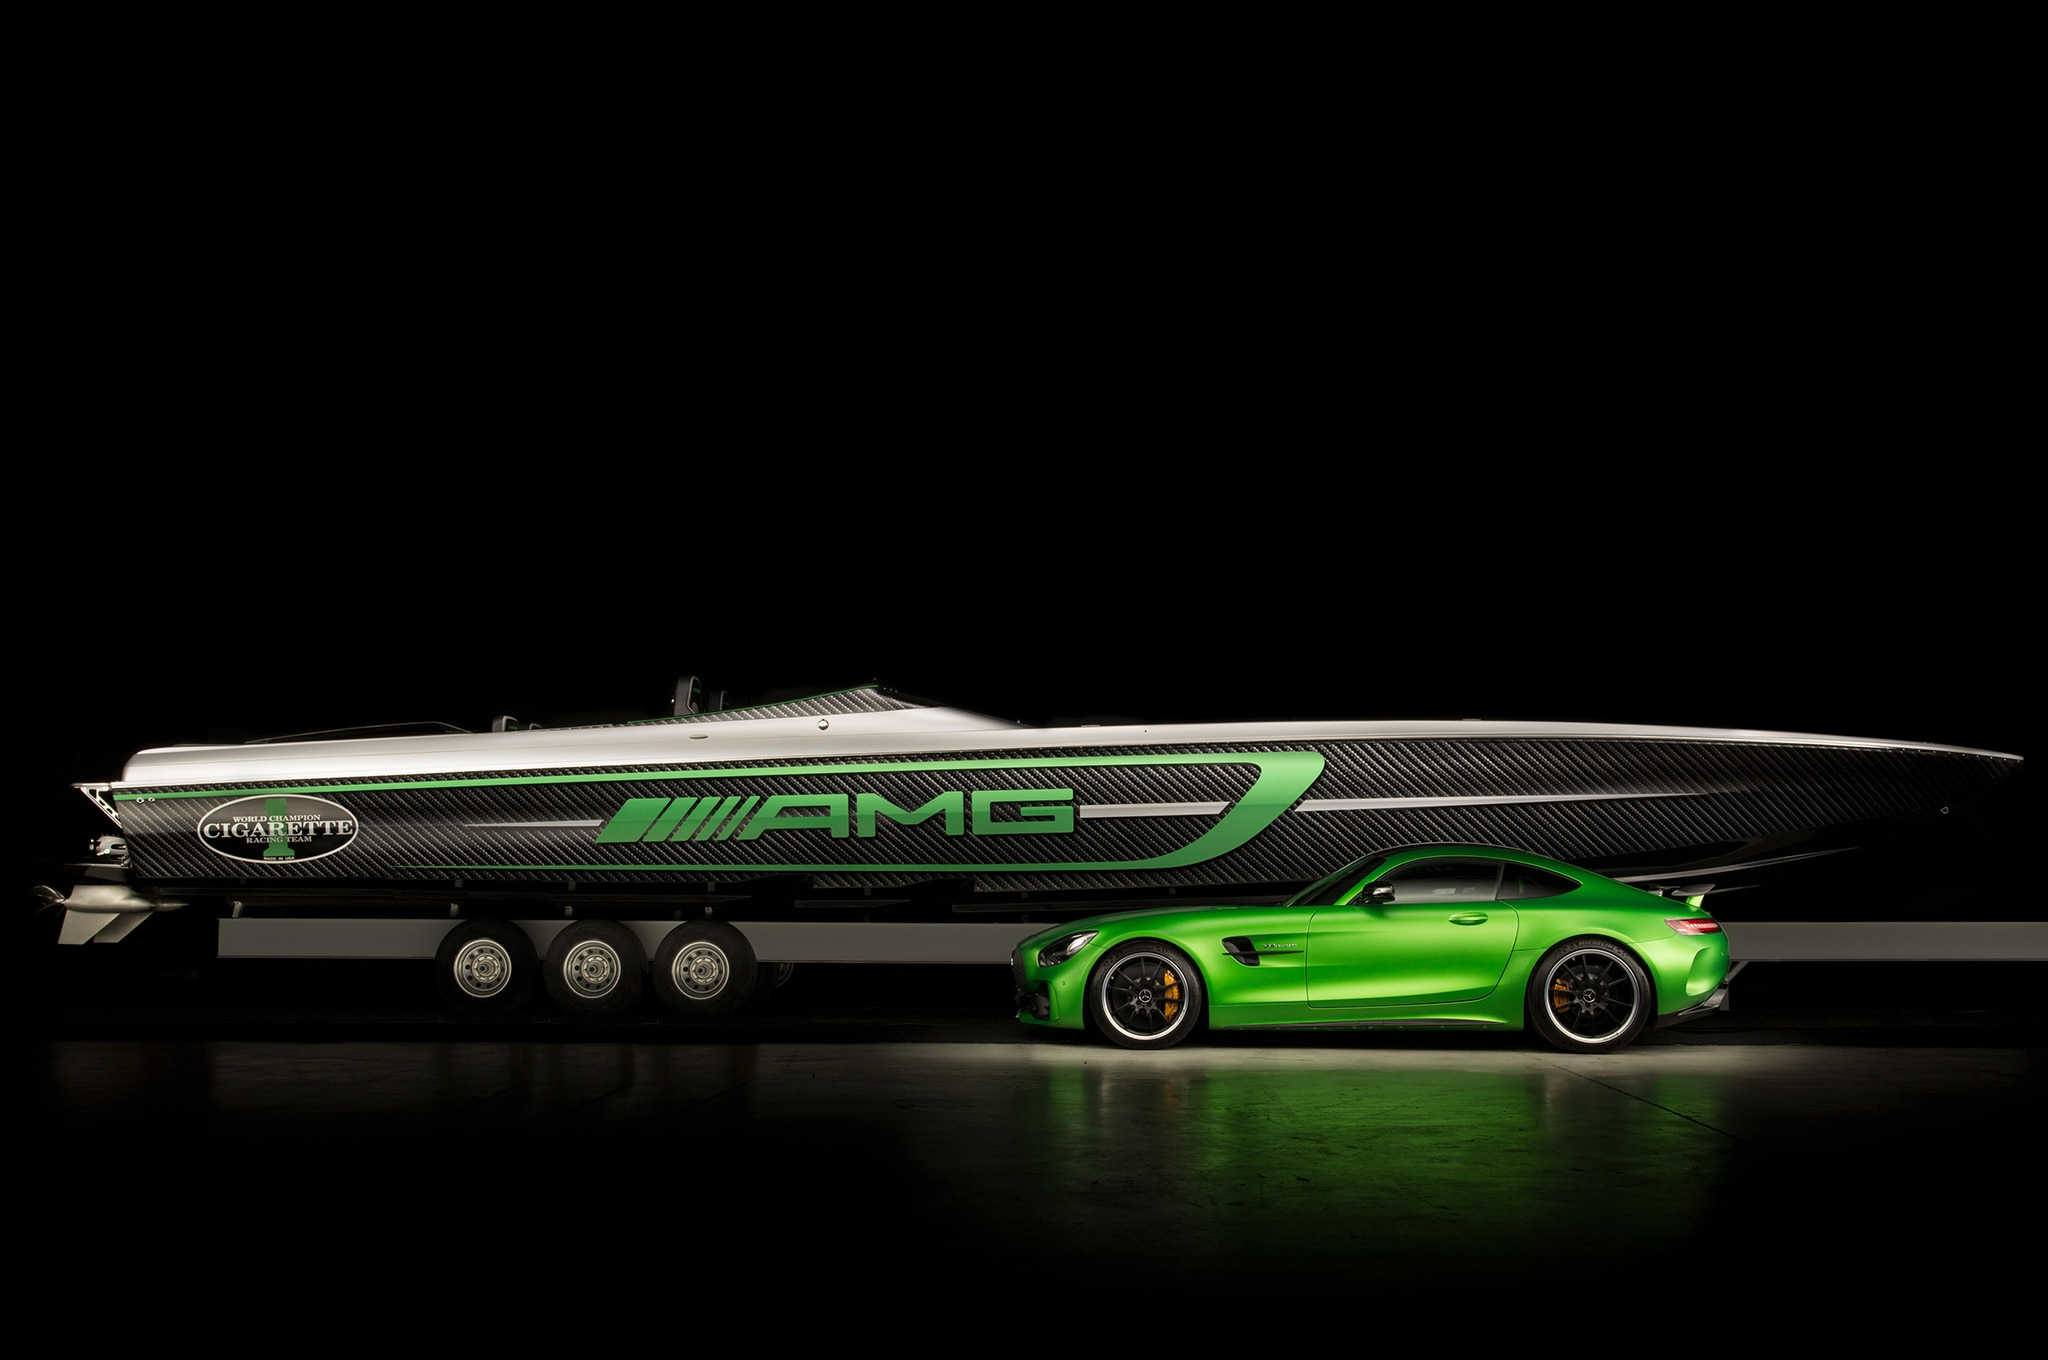 Mercedes AMG Cigarette Racing Car And Boat 2